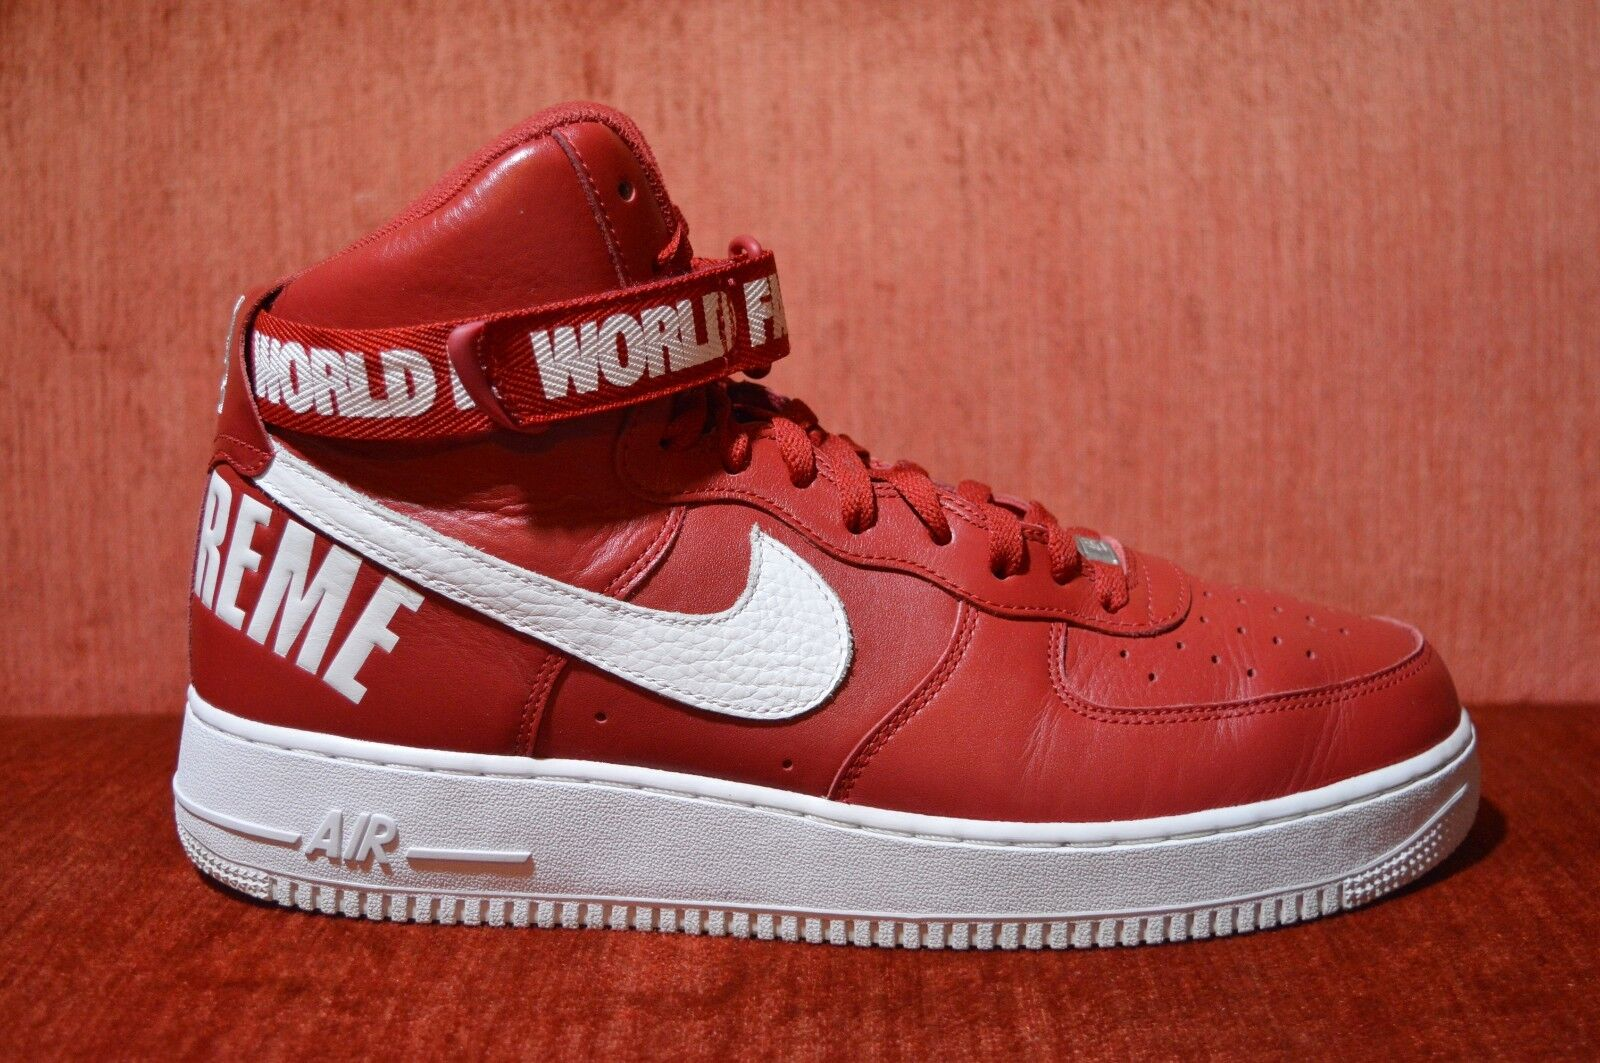 CLEAN NIKE AIR FORCE 1 HIGH SUPREME SP World Famous RED SIZE 13 698696 610